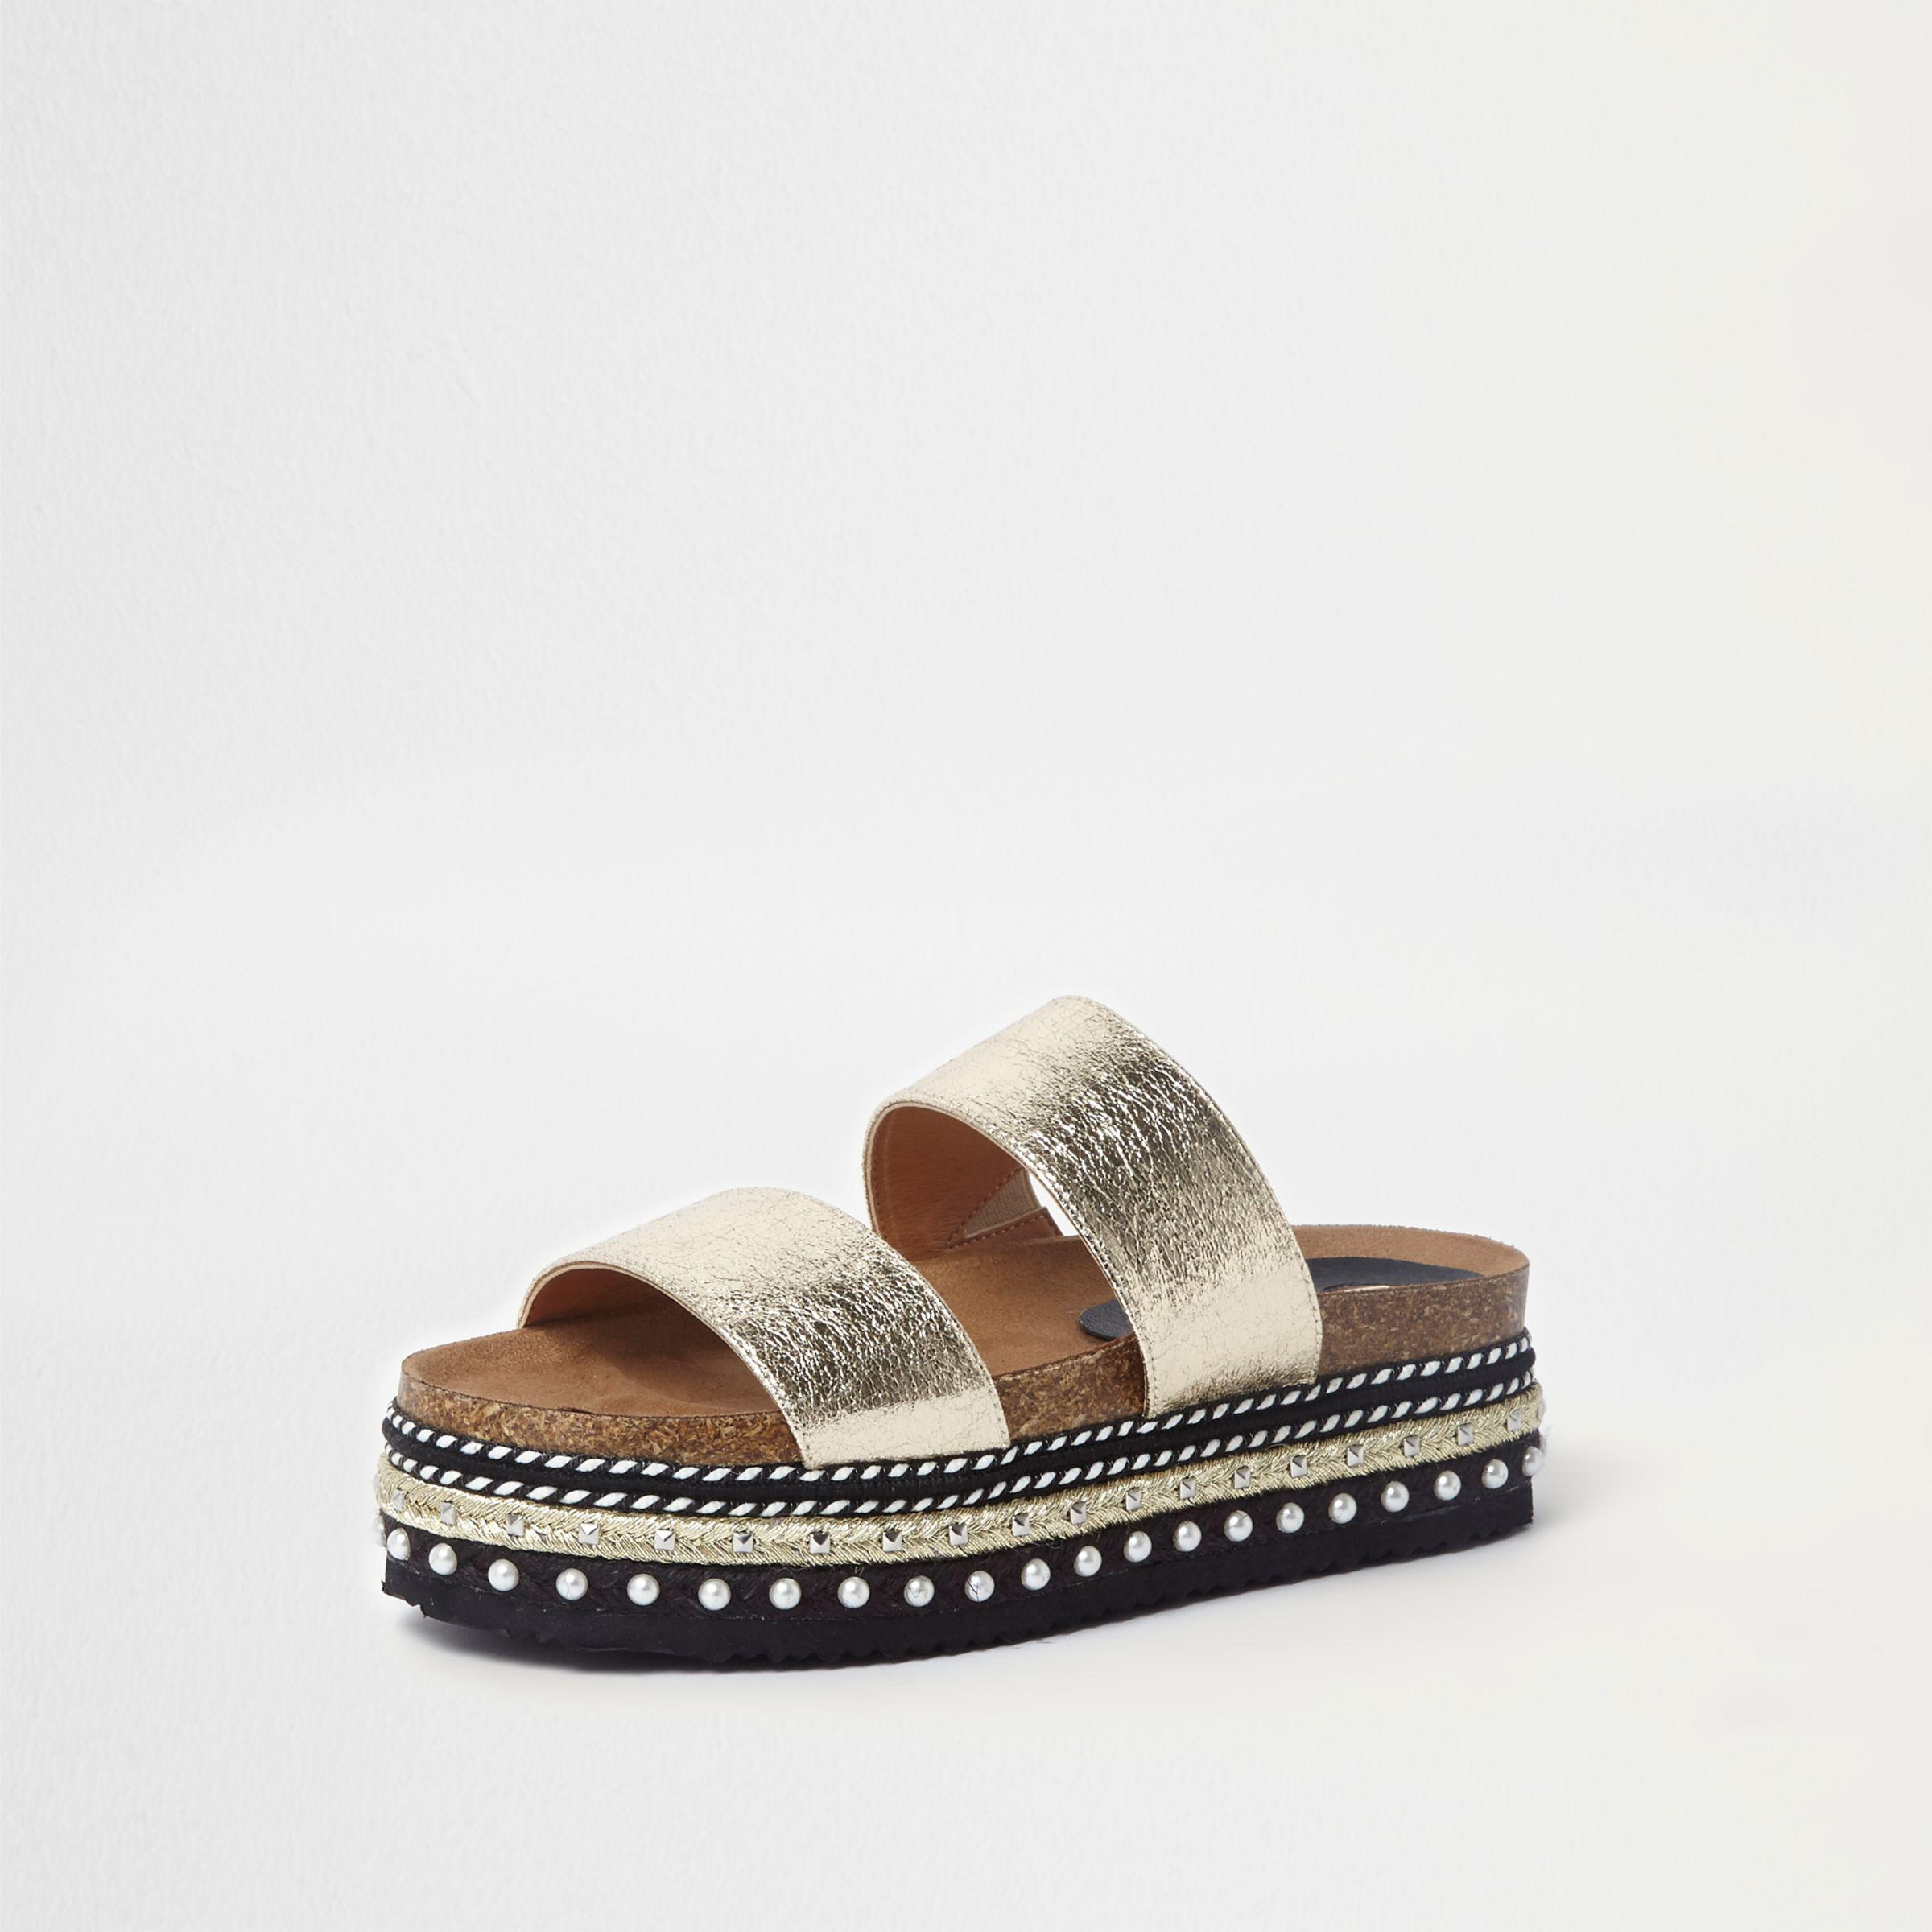 6112217dc0f7 Lyst - River Island Metallic Embellished Flatform Sliders in Metallic